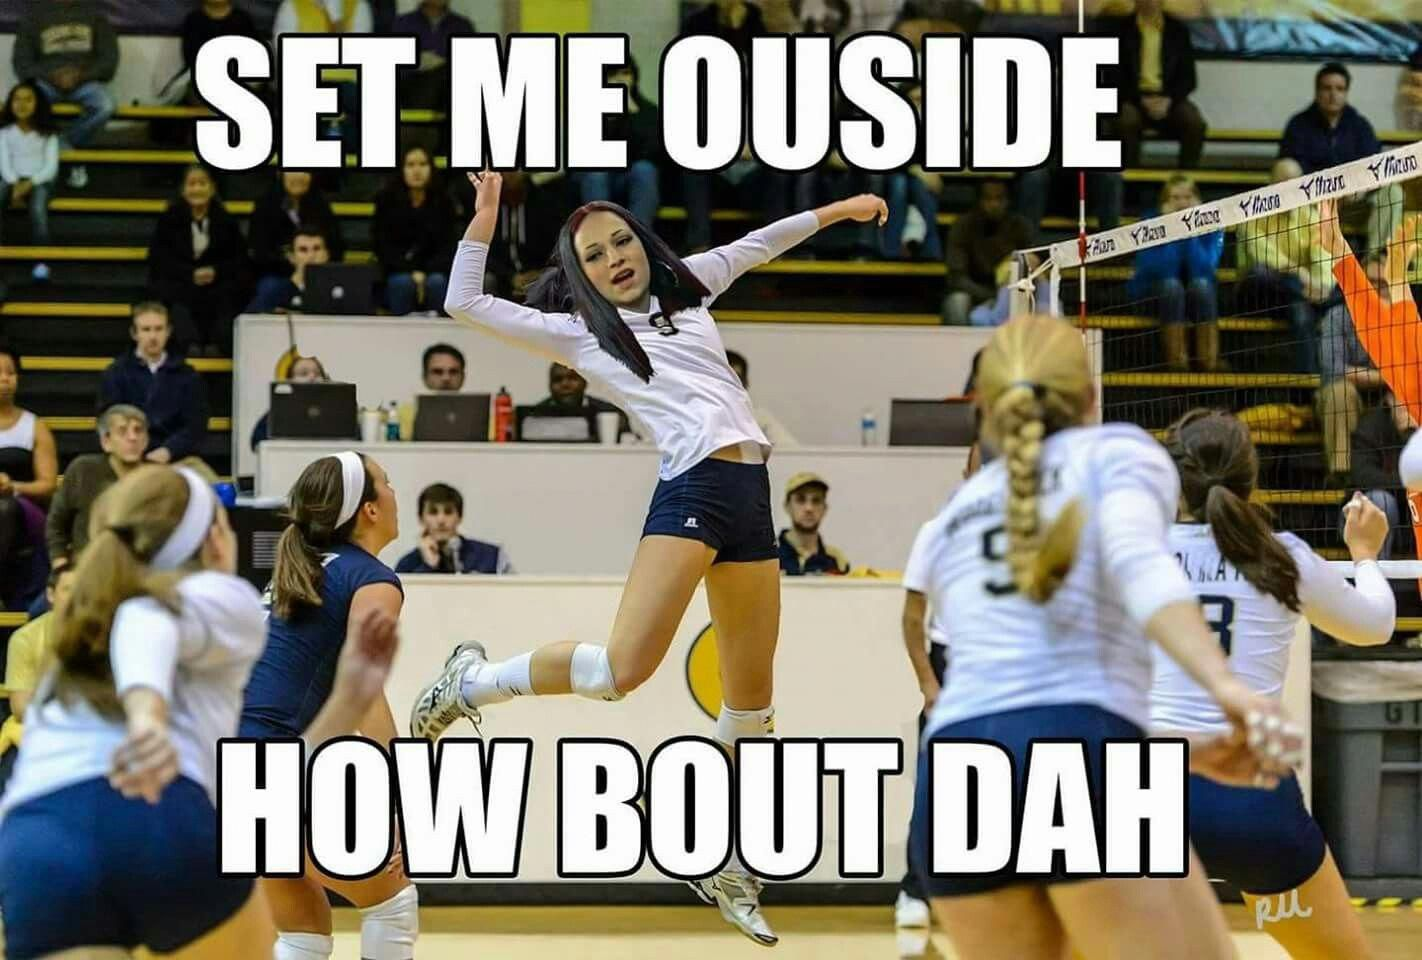 I M Pretty Sure This Meme Isn T Going Away Anytime Soon Credit Volleyball Memes Sportsmemes Volleyball Humor Volleyball Workouts Volleyball Inspiration